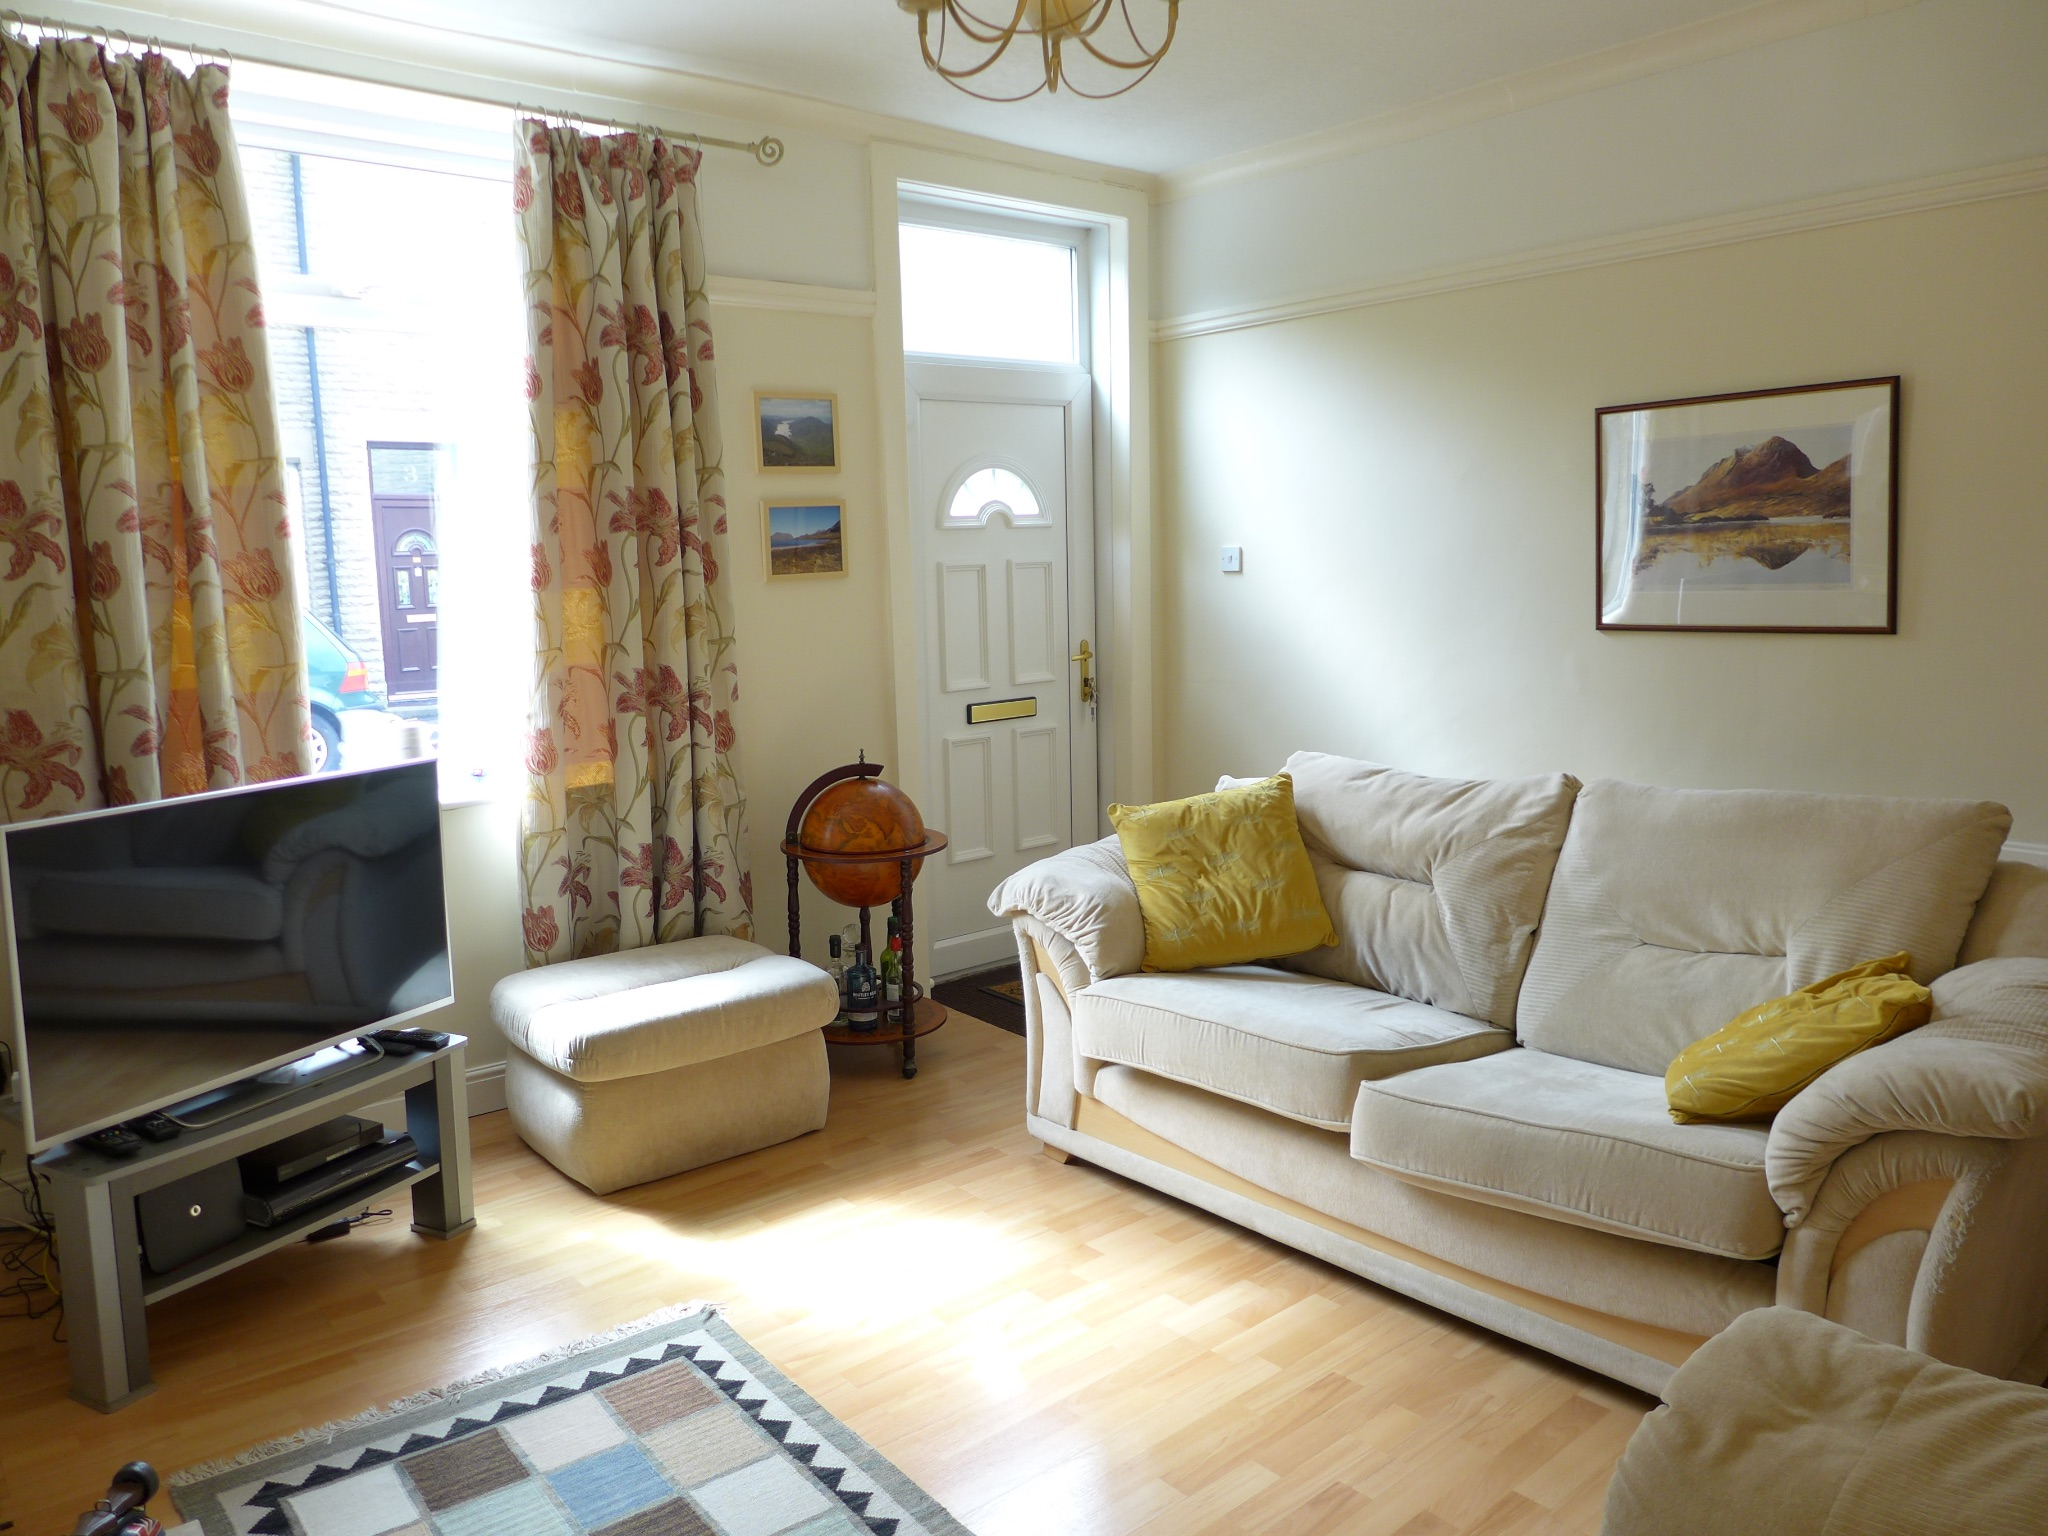 3 bedroom end terraced house For Sale in Todmorden - Photograph 4.